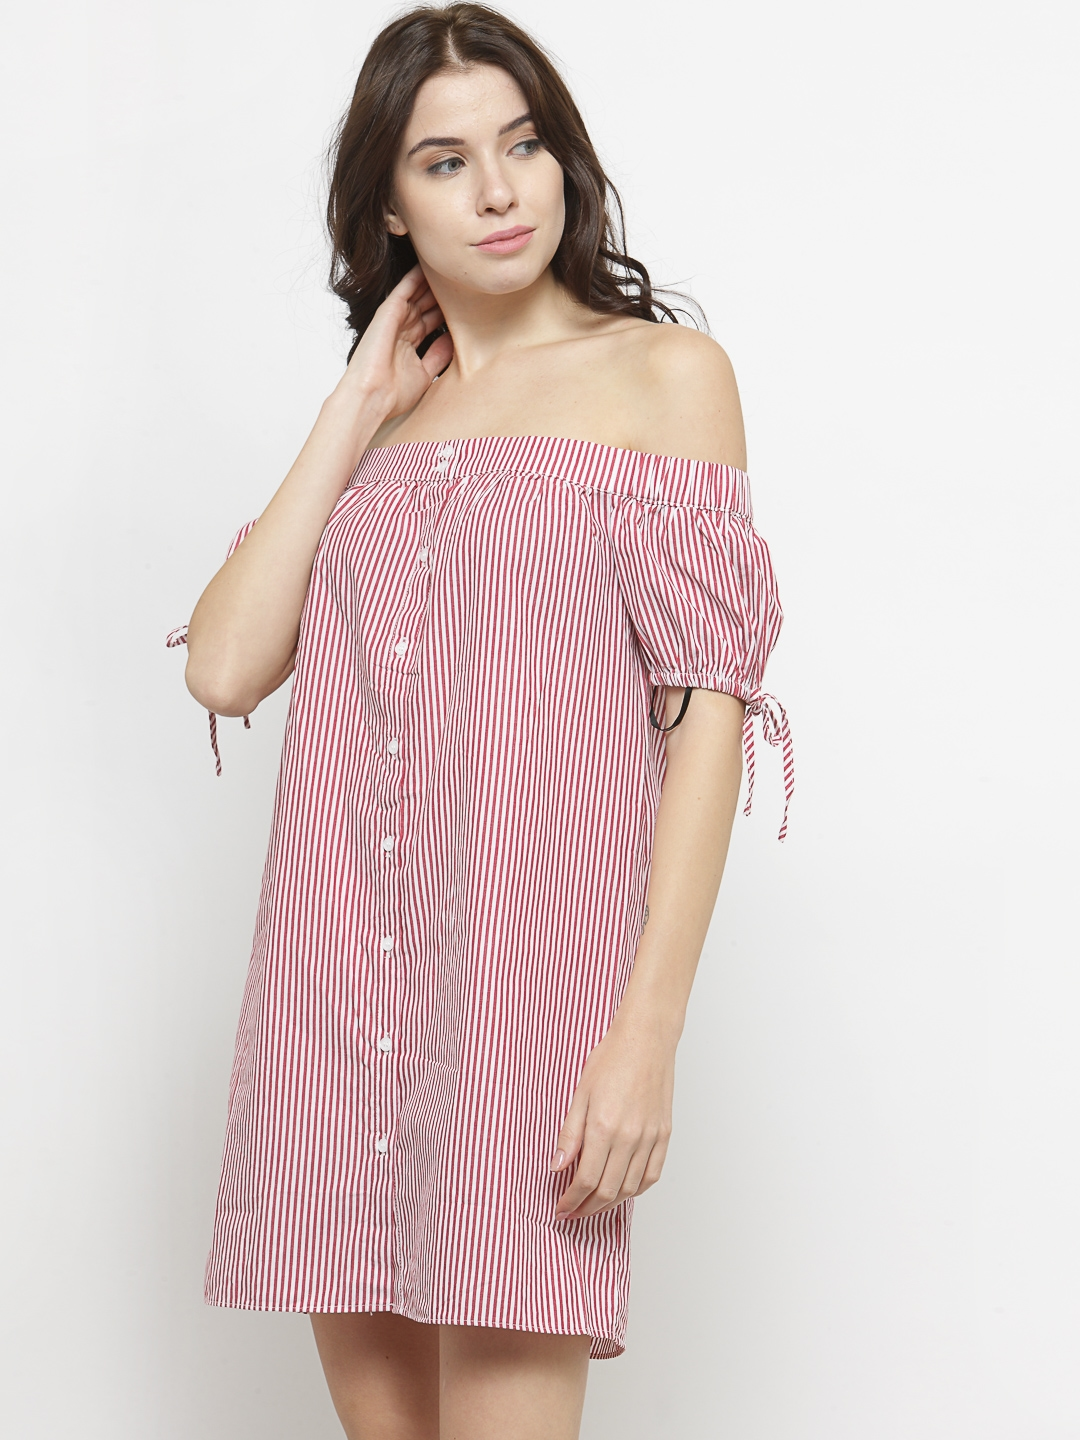 780ef41fa0a0aa Buy FOREVER 21 Women Red   White Striped Off Shoulder Shirt Dress ...